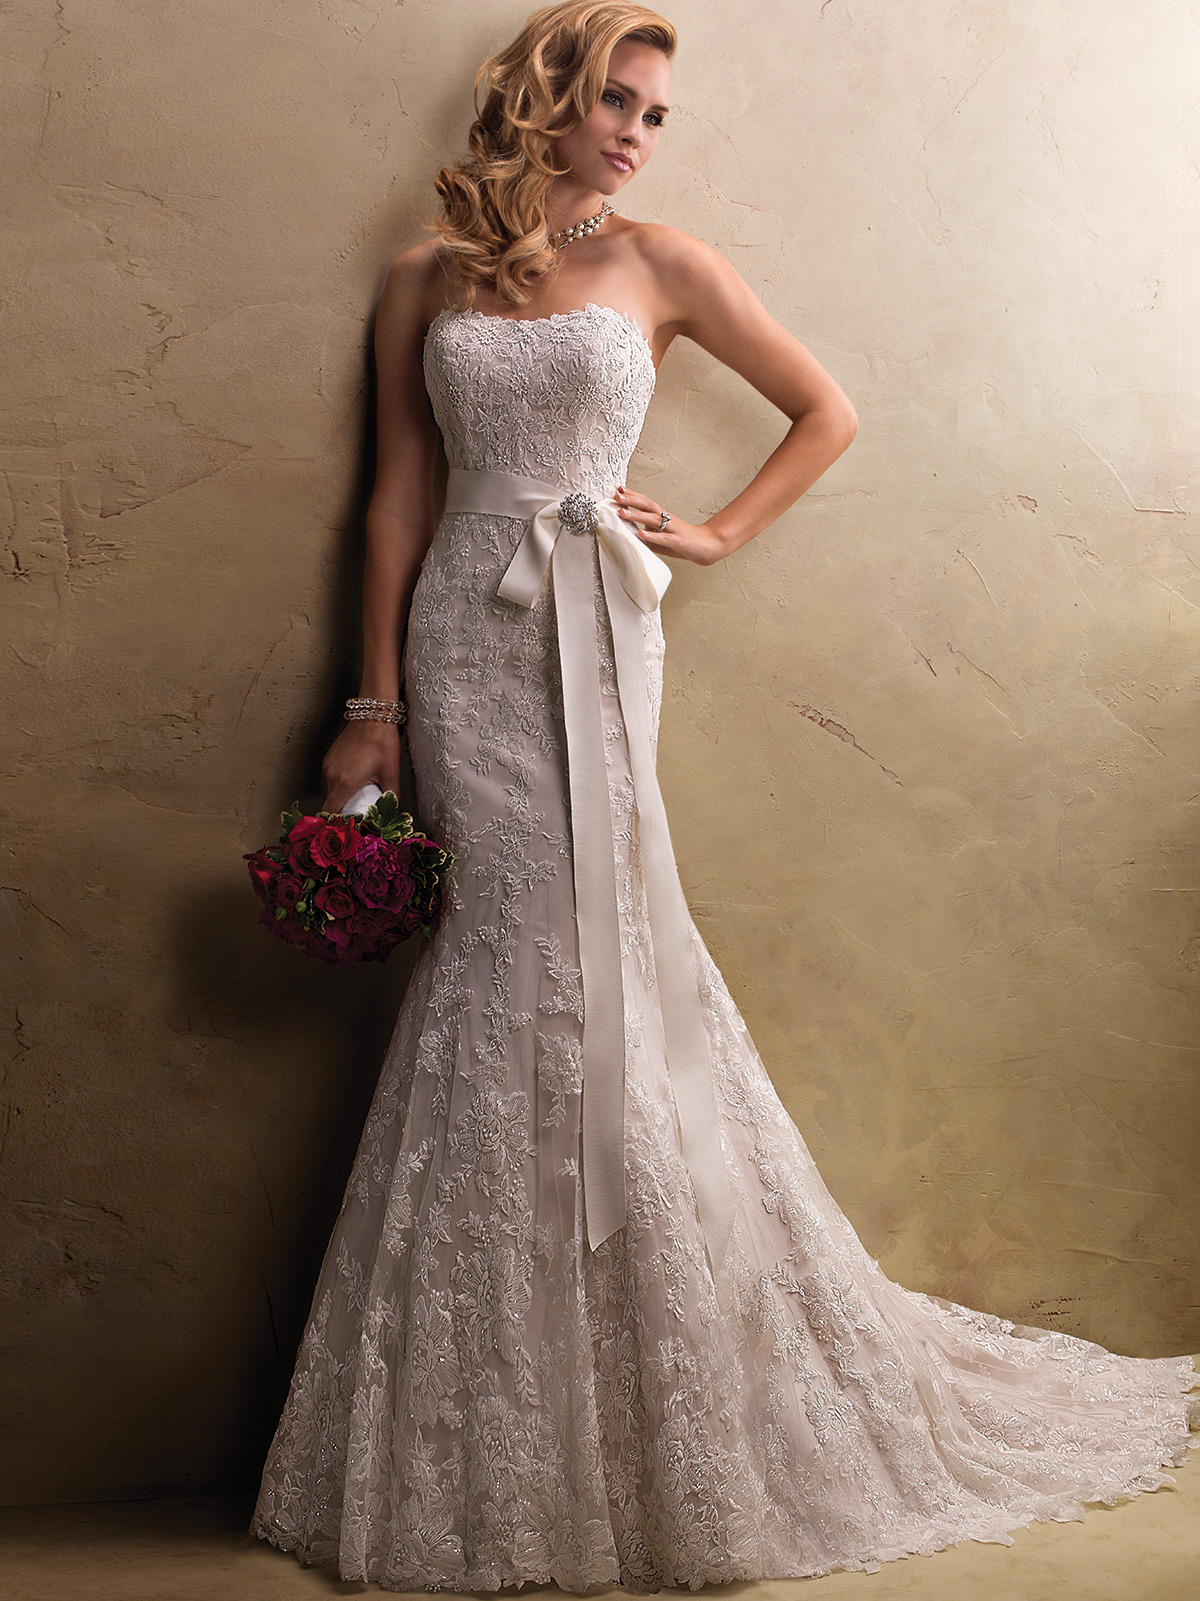 maggie sottero strapless lace wedding dresses strapless lace wedding dress Maggie Sottero Strapless Lace Wedding Dresses